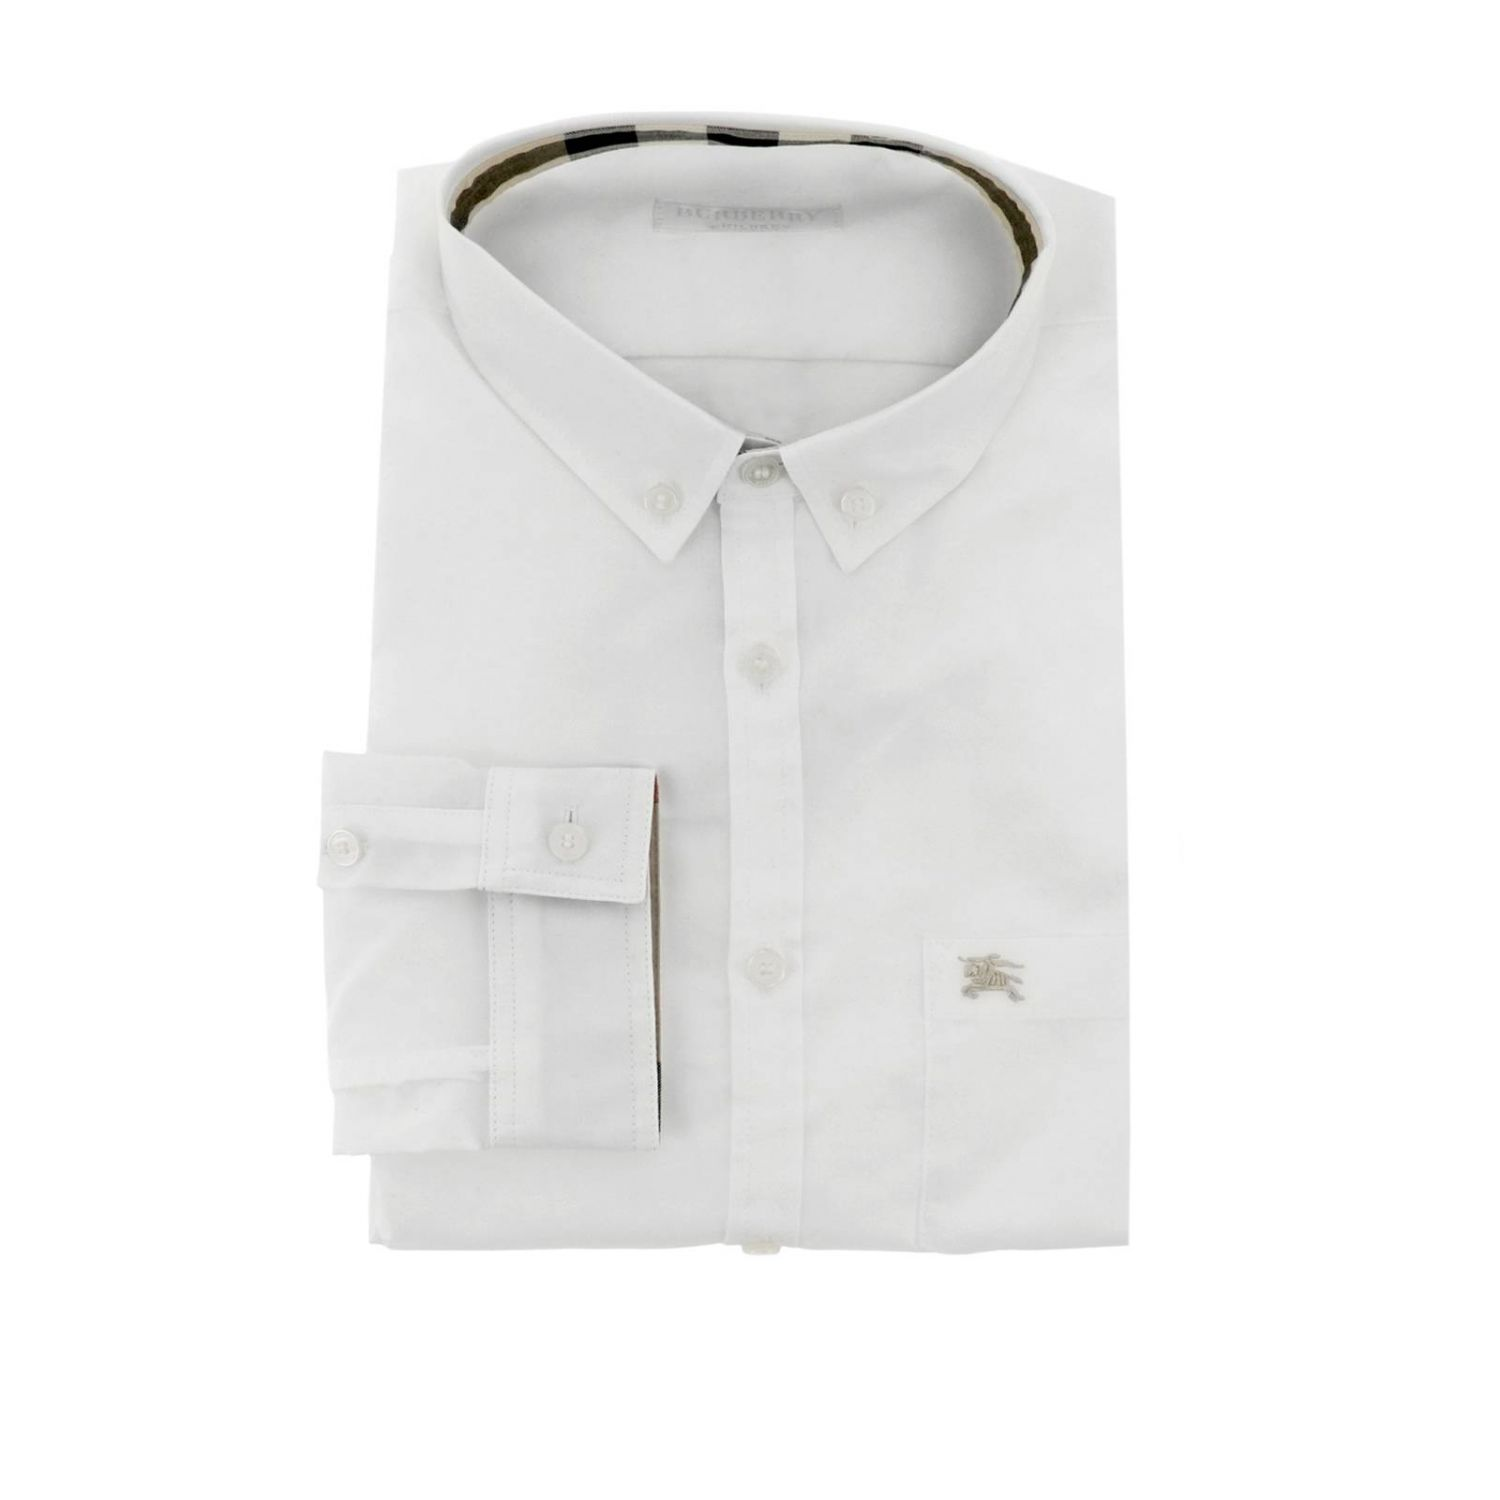 Camicia con collo button down interni check e taschino a toppa Burberry bianco 1